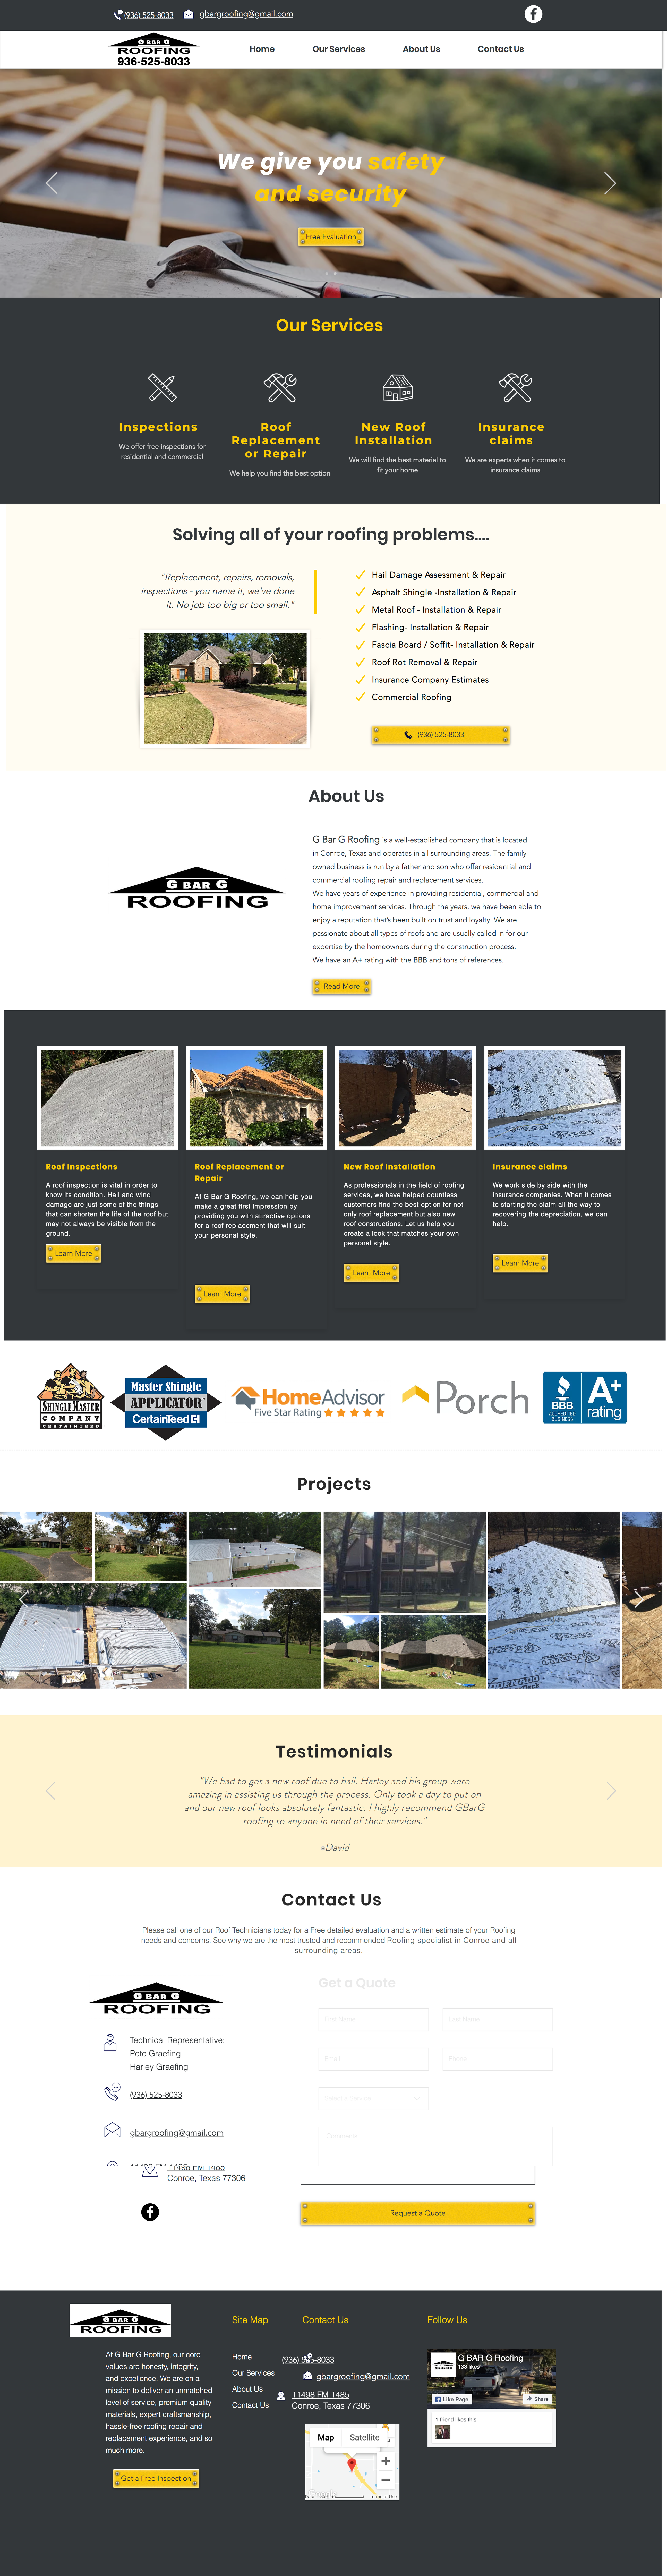 G Bar G roofing